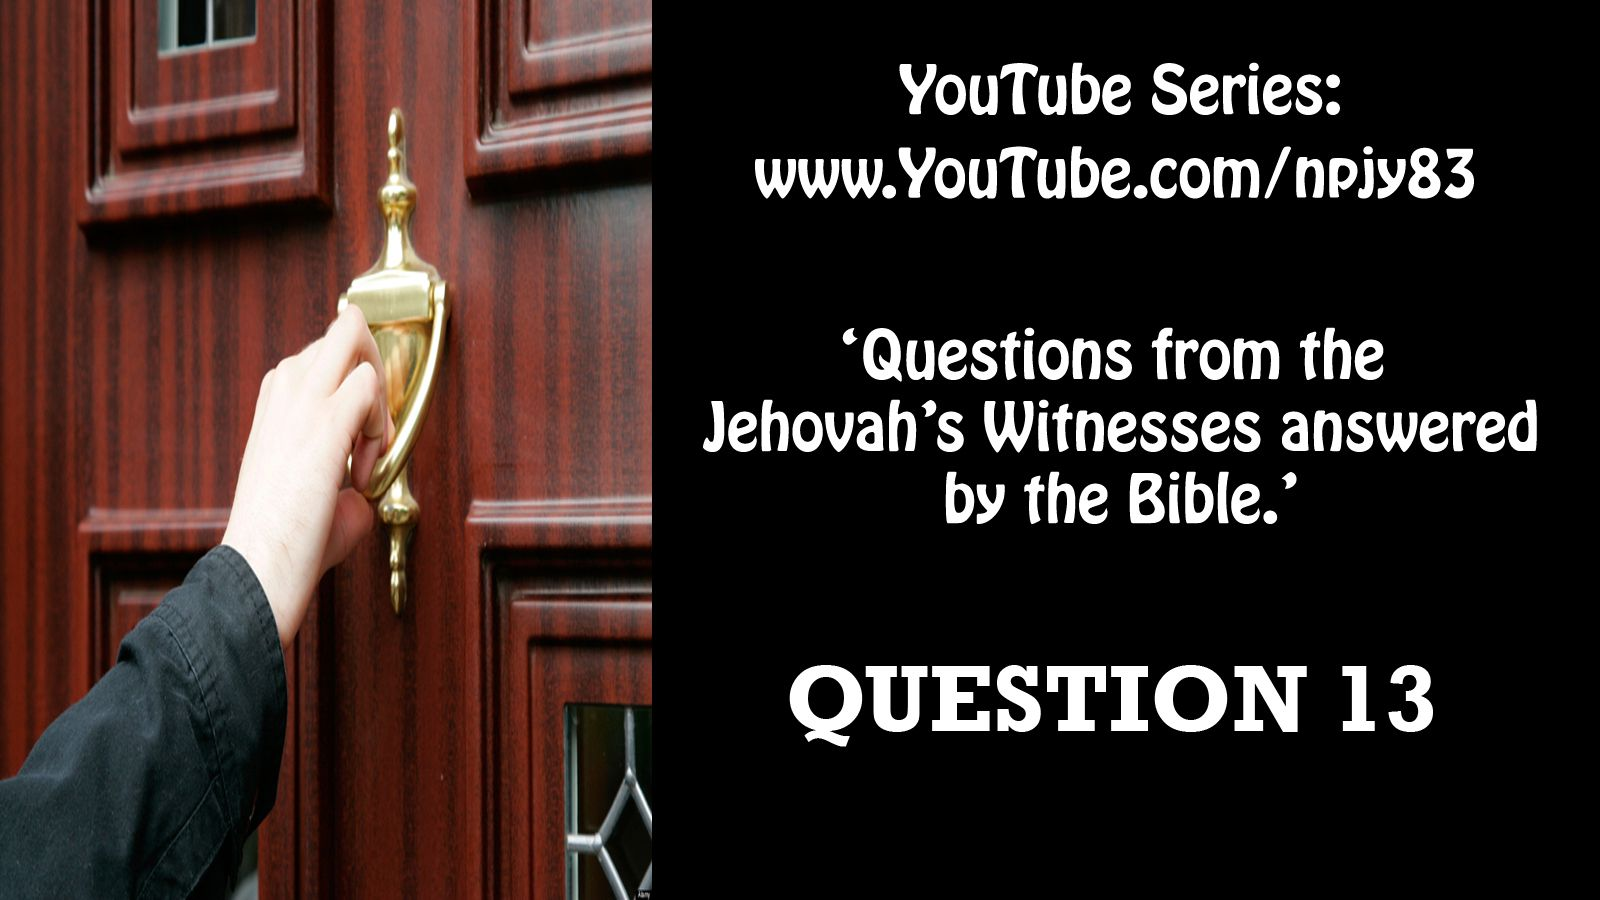 """Question 13 """"Who are going to Heaven?""""  Watch now at: http://youtu.be/OANAcSuRzwM  #Jehovah #JehovahsWitness #JehovahWitnesses #Salvation #Gospel #JesusSaves #Watchtower #Heaven #Paradise #hope #faith #love #KingdomHall #144000 #JWorg"""